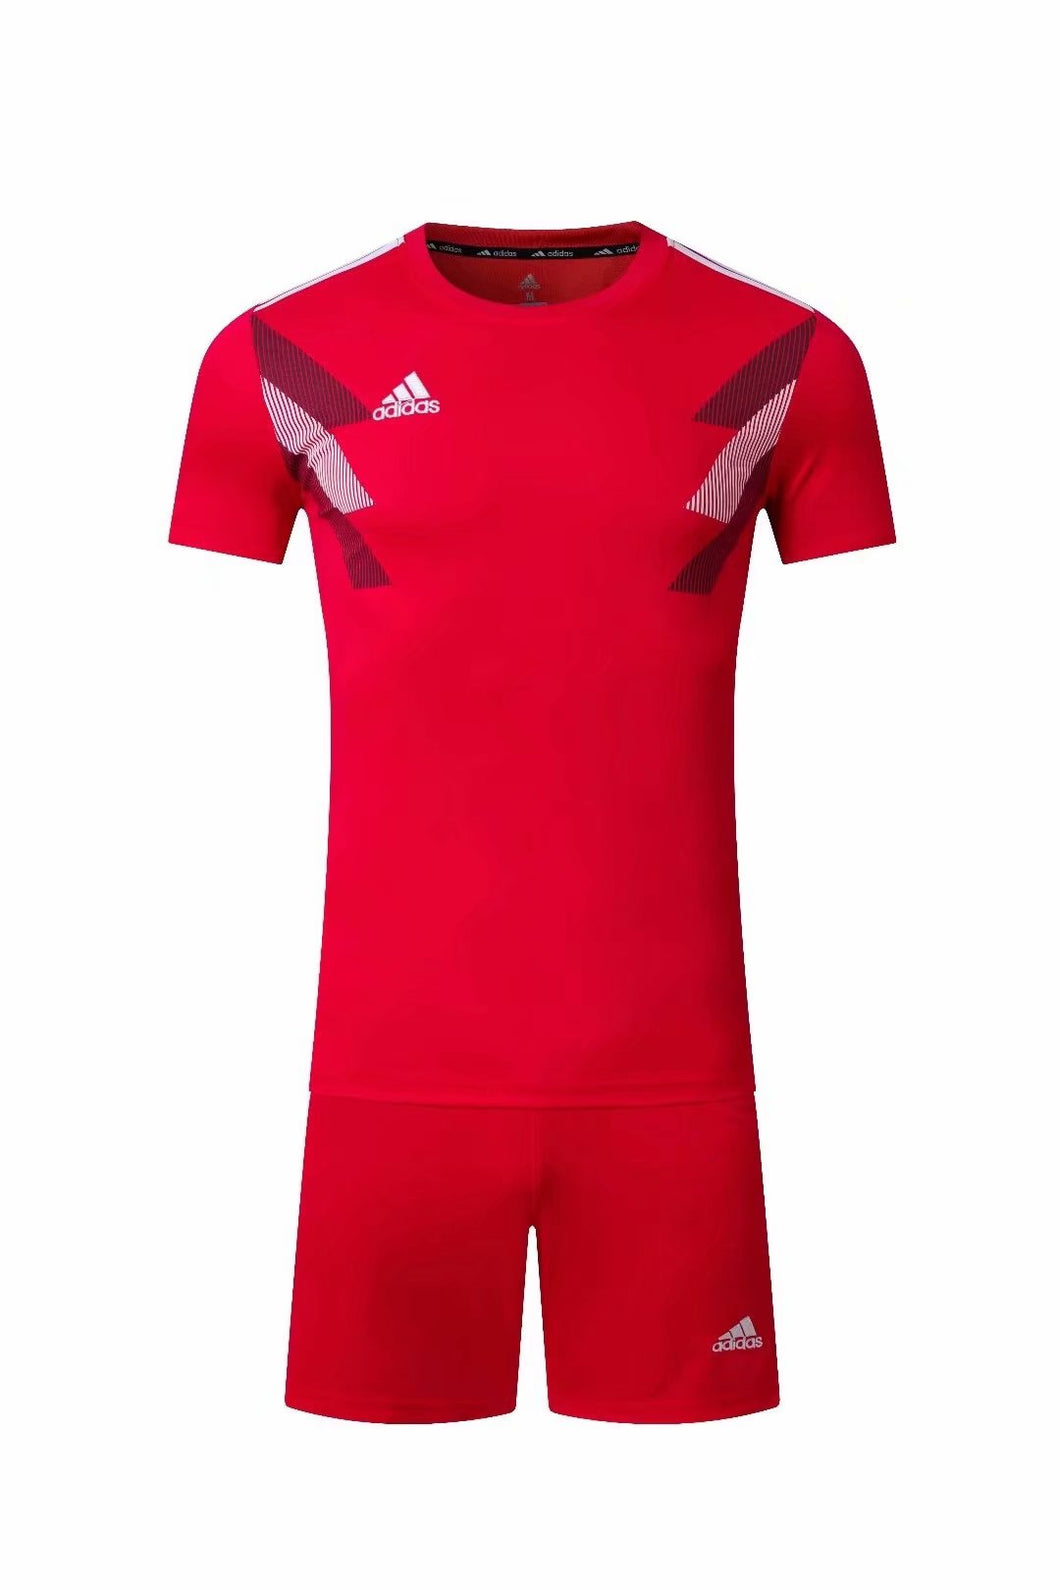 Adidas Full Football Kit Adult Sizes only - Red with Black and White Chest graphic